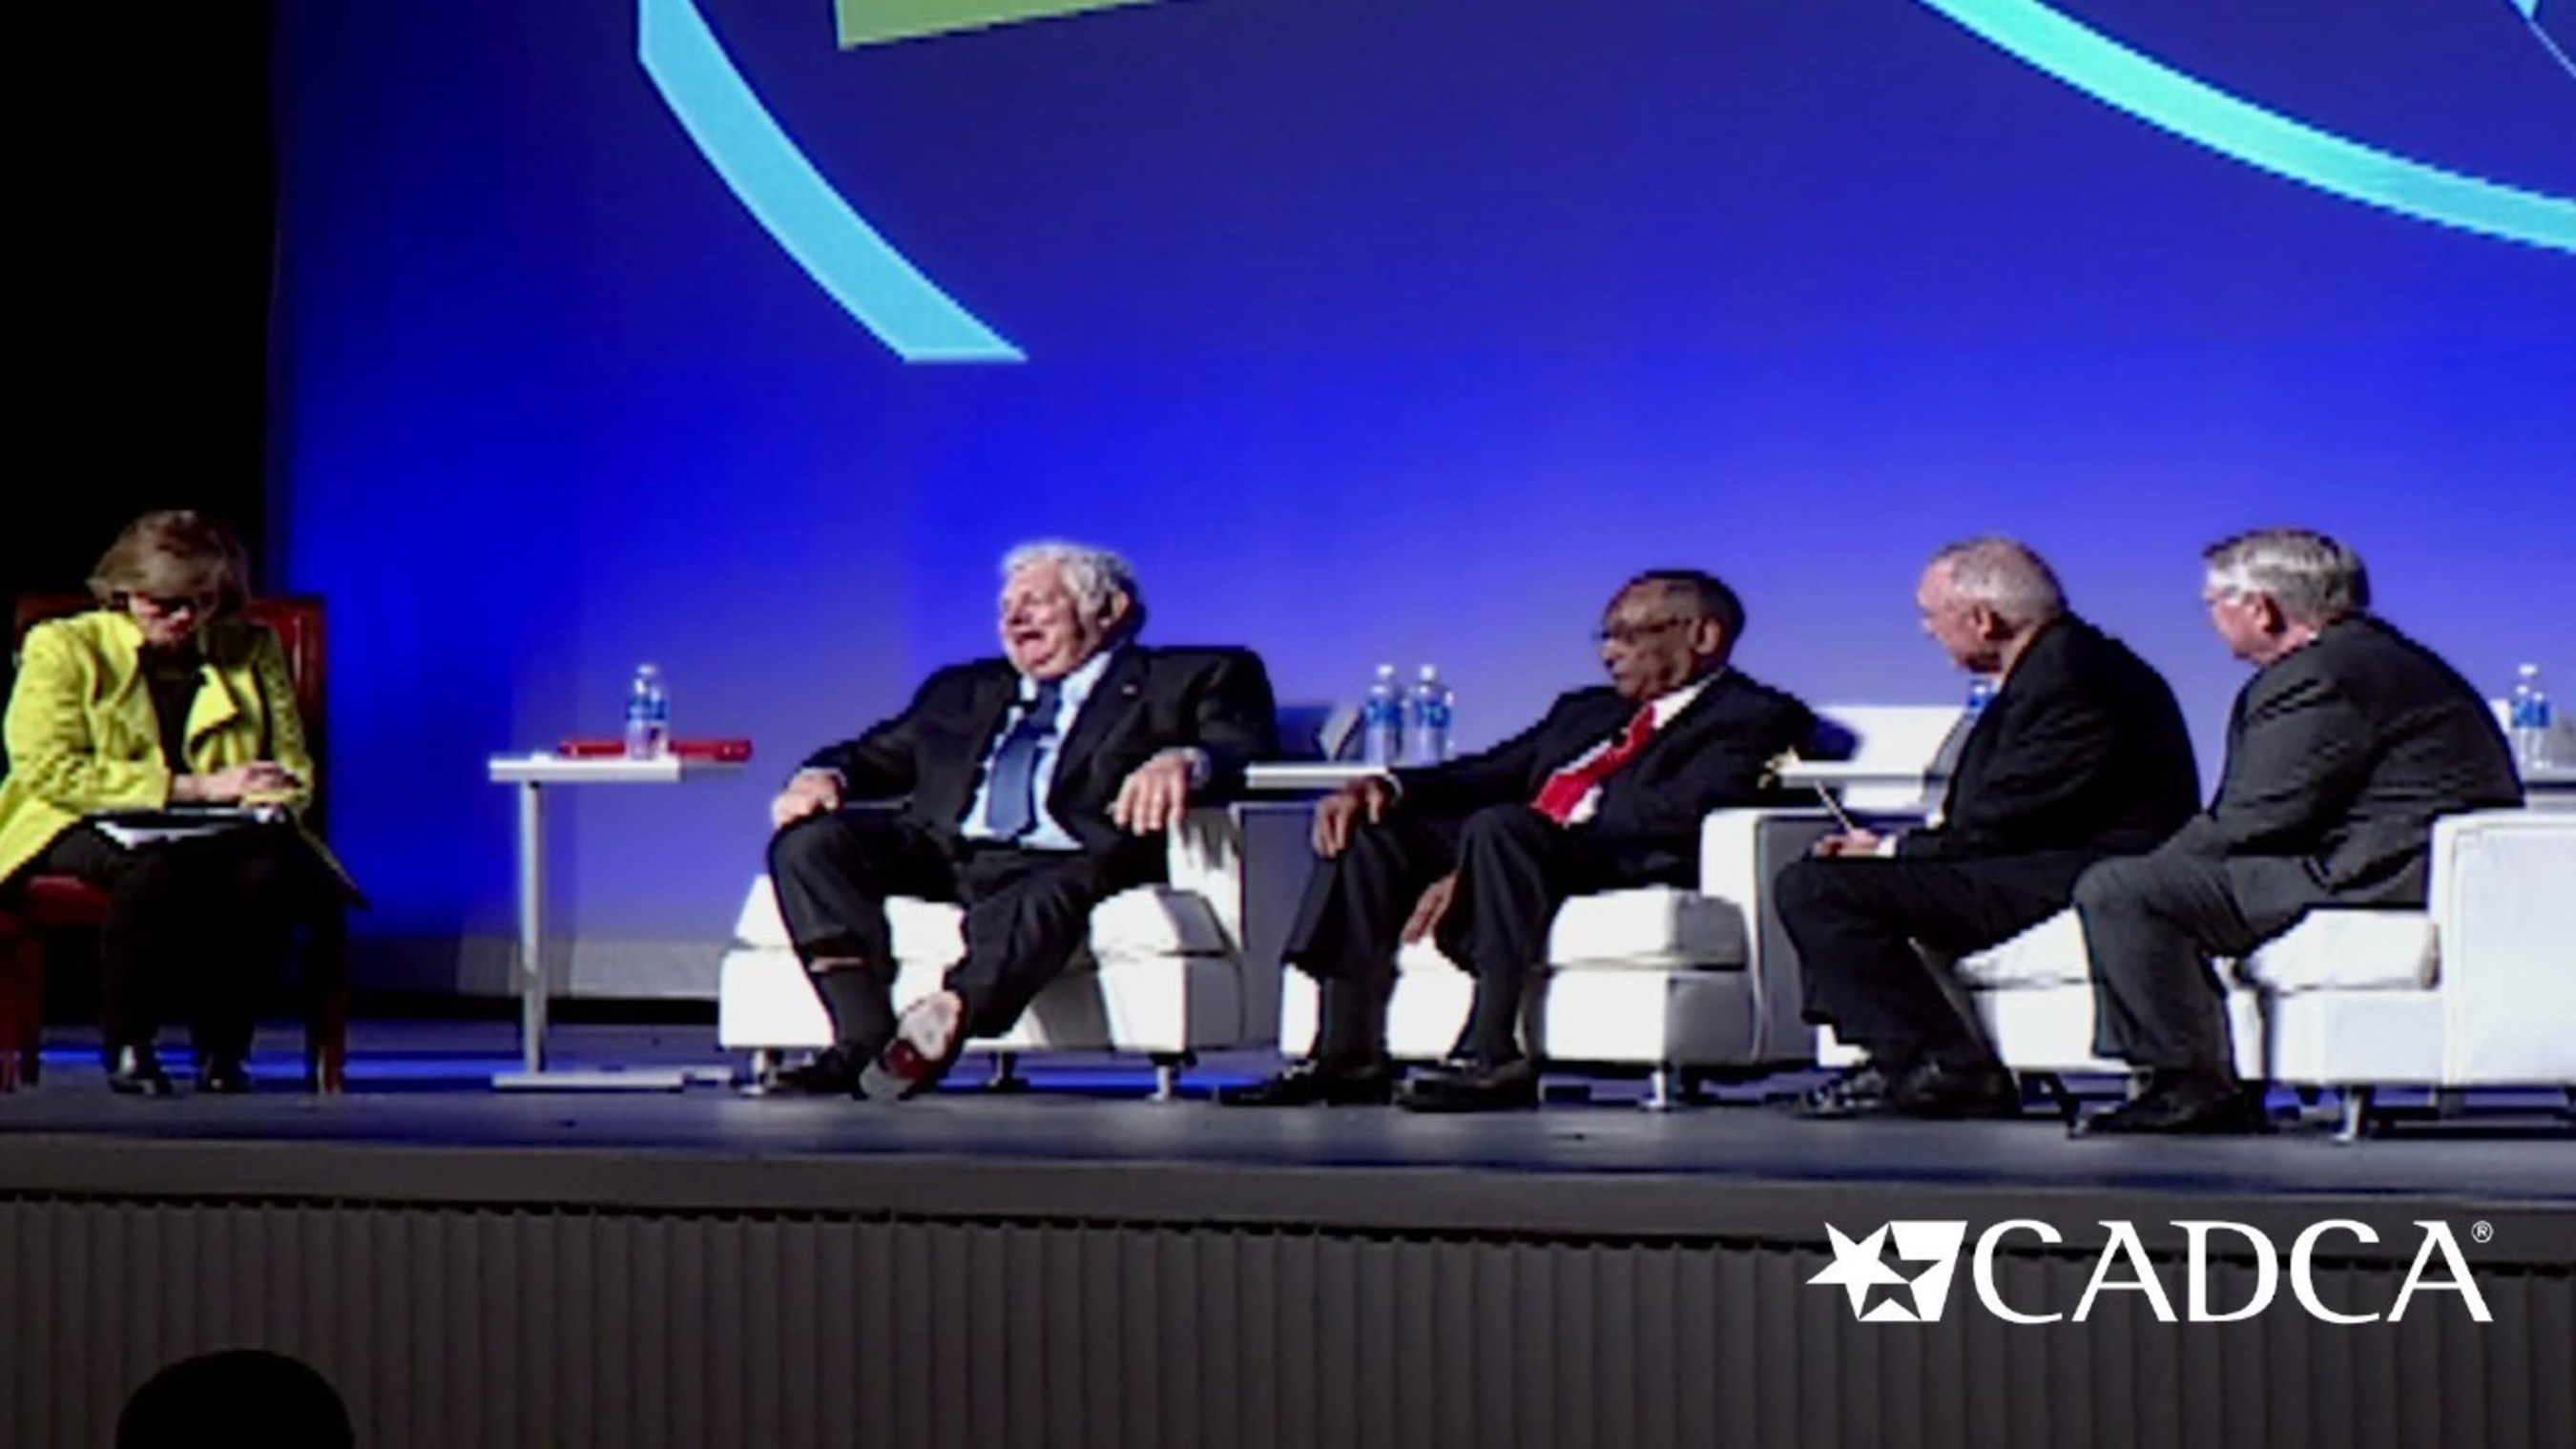 Four former U.S. drug czars took part in a historic dialogue on drug policy in America at CADCA's 25th Annual National Leadership Forum